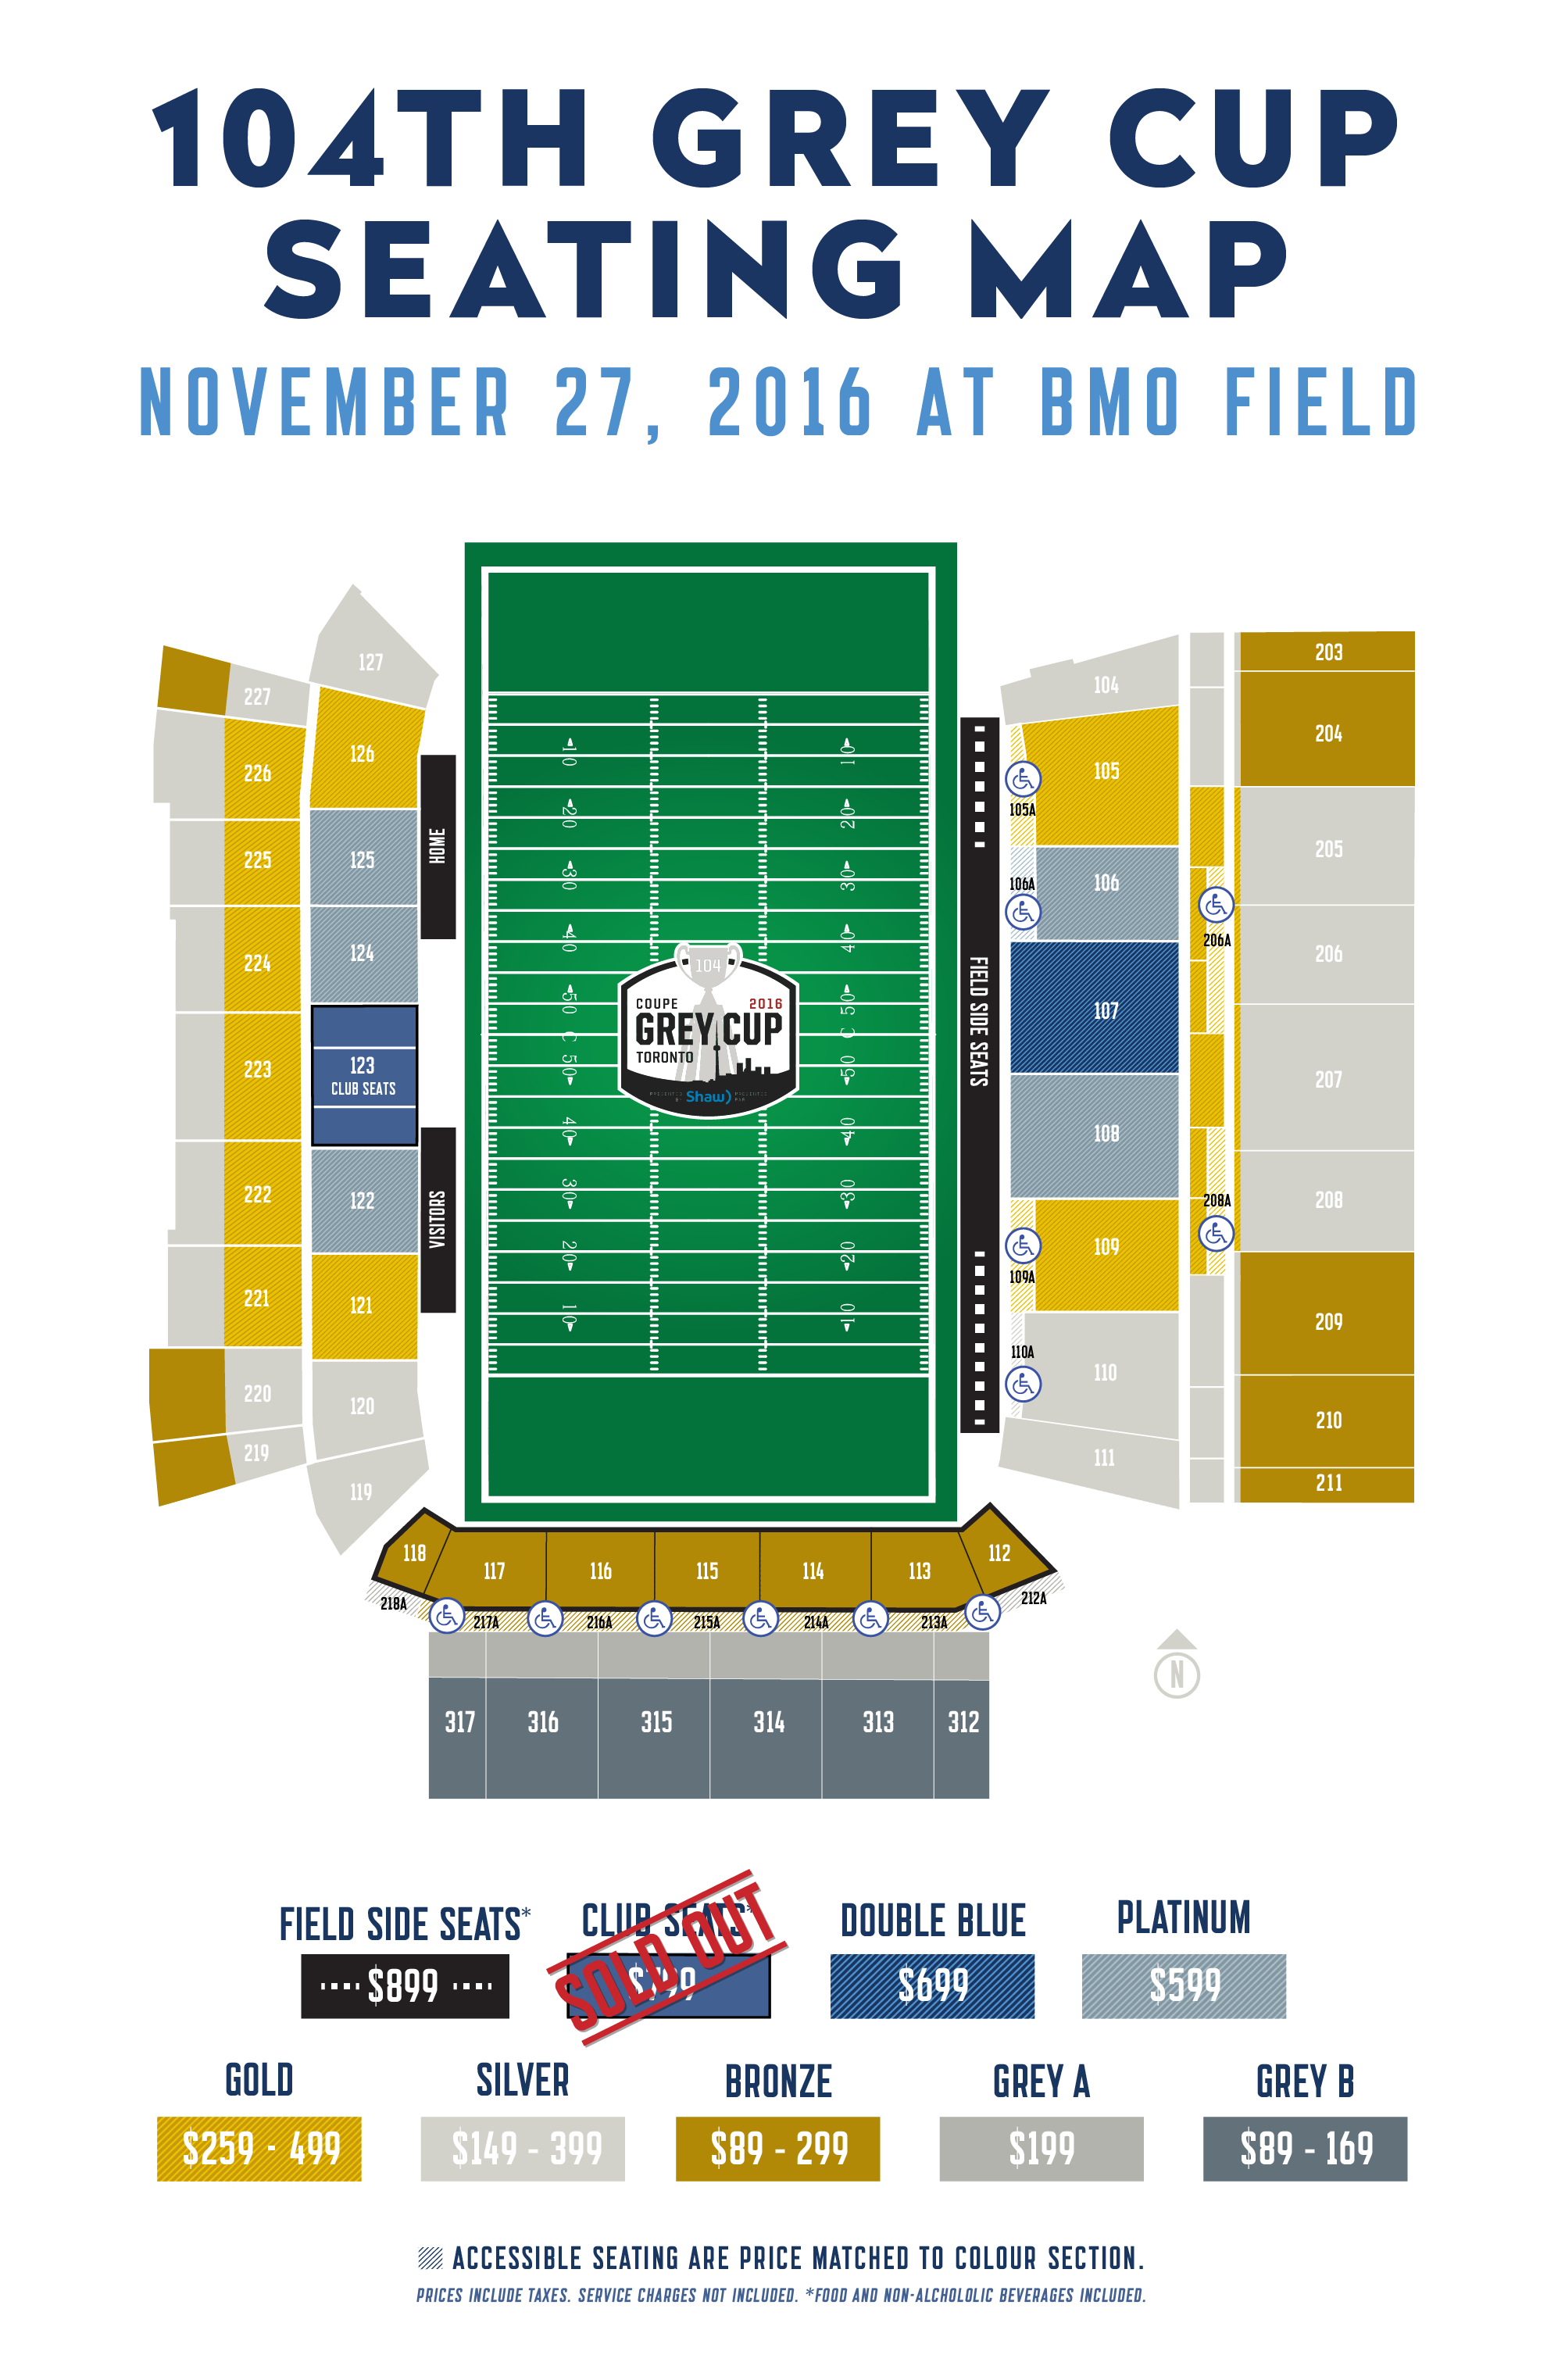 New Ticket Prices For The 104th Grey Cup Presented By Shaw